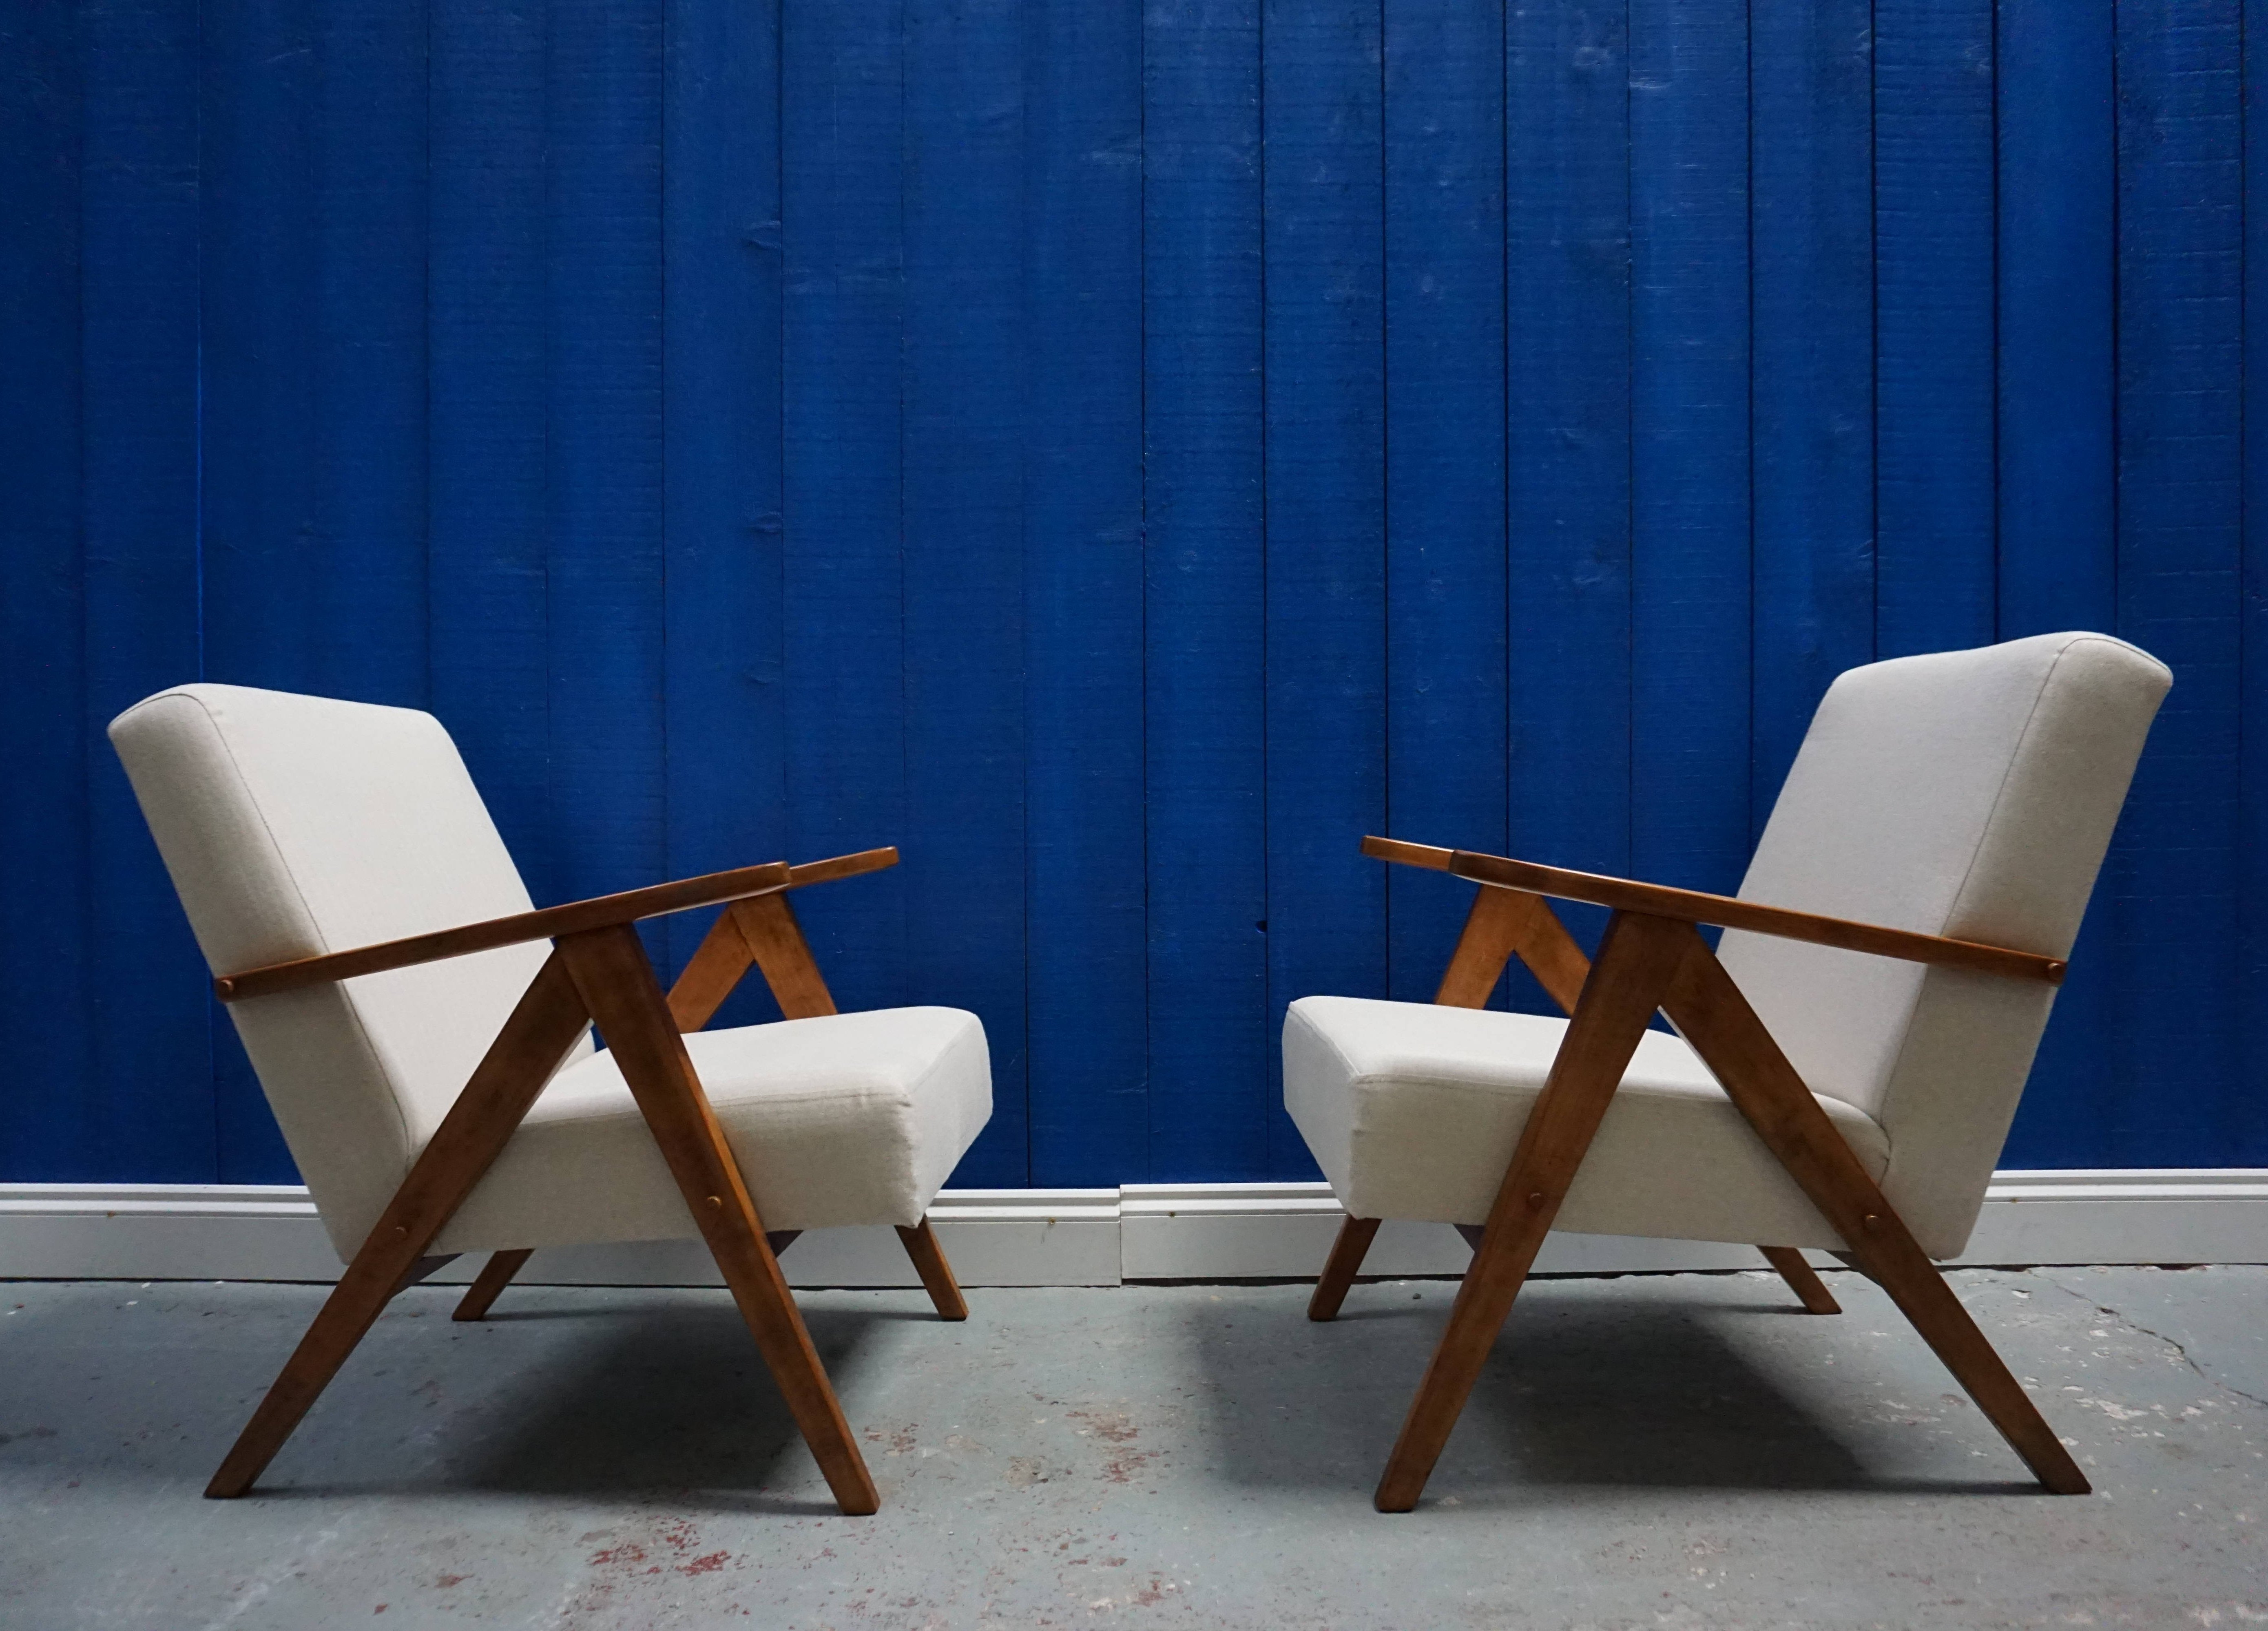 Amazing Model B 310 Var Mid Century Modern Easy Chairs In Tweed 1960 Beatyapartments Chair Design Images Beatyapartmentscom